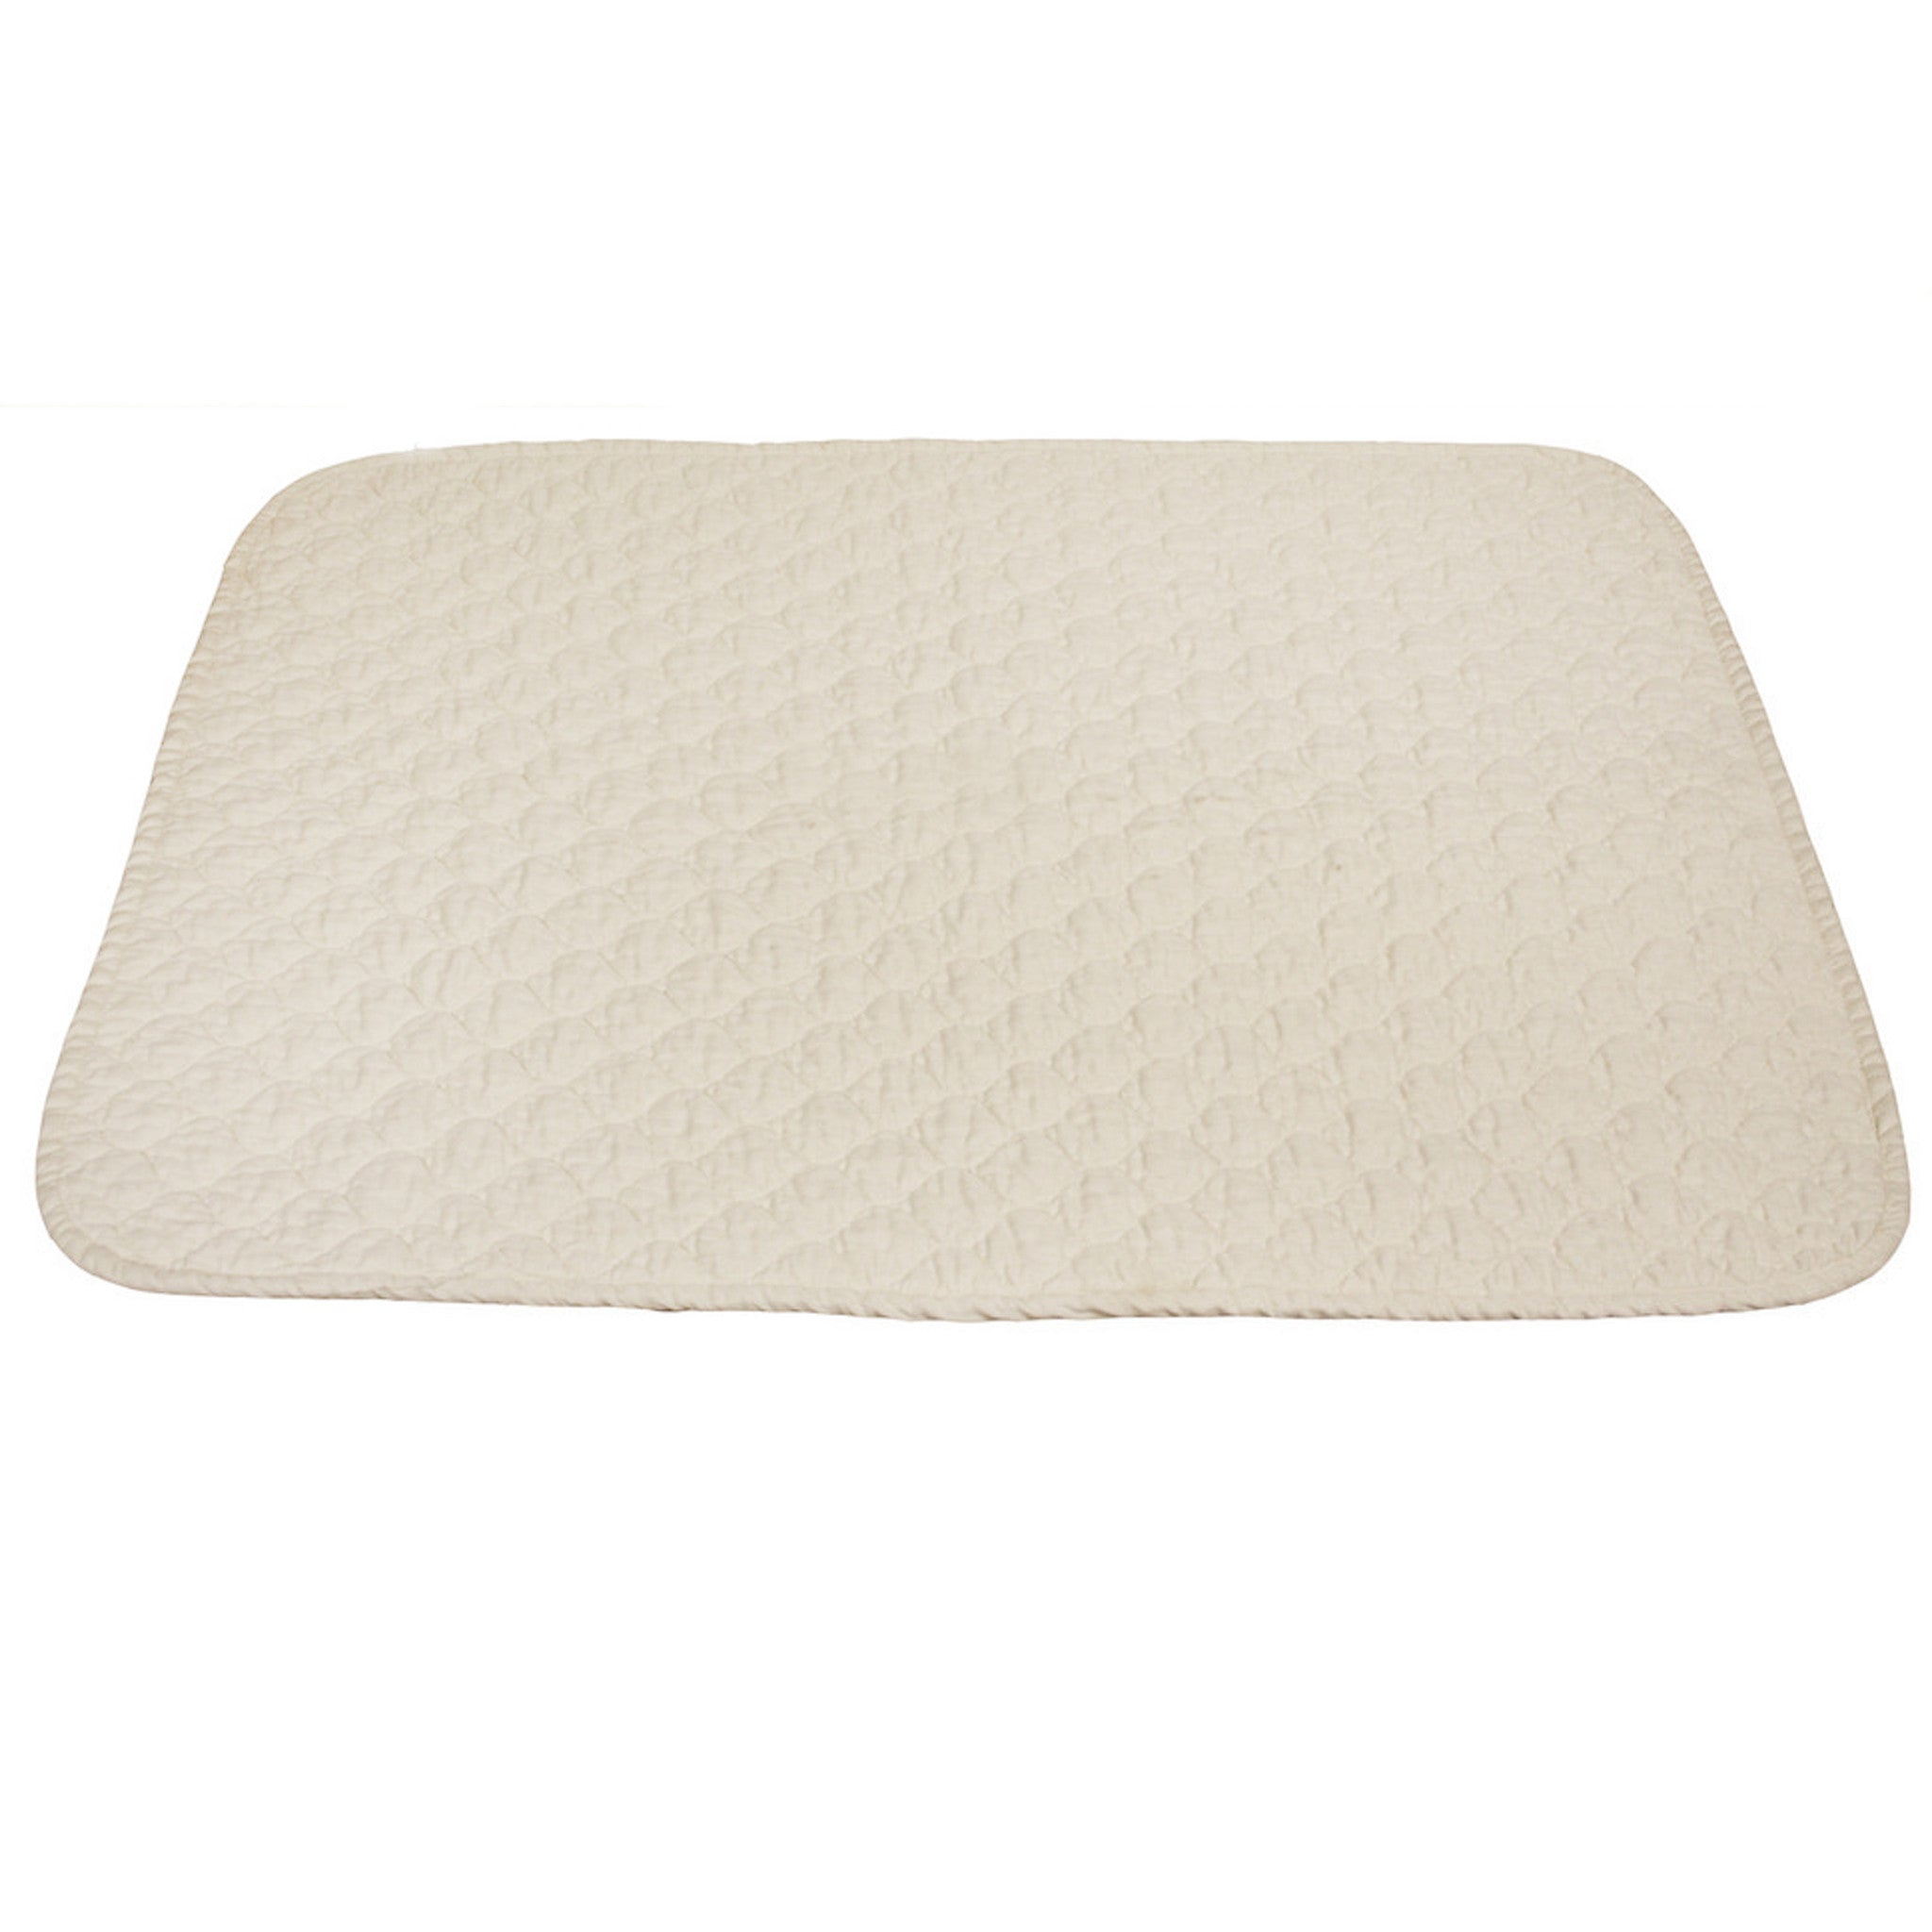 cotton filled mattress pad Organic Mattress Pad for Cribs   My Organic Sleep cotton filled mattress pad